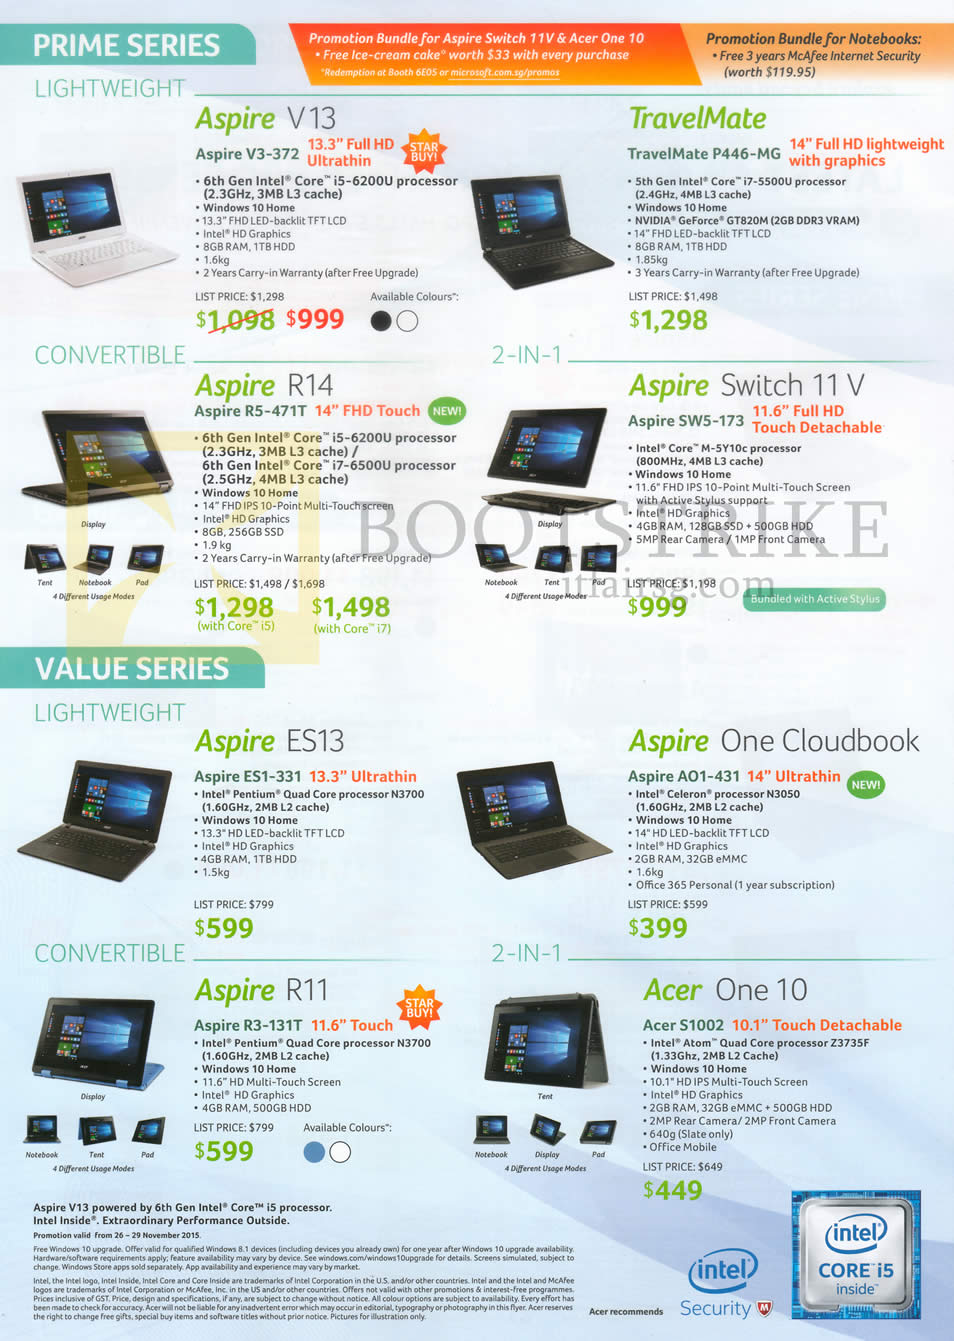 SITEX 2015 price list image brochure of Acer Notebooks Prime Series, Aspire V3-372, TravelMate P446-MG, R5-471T, Switch 11 V, SW5-173, Aspire ES1-331, One Cloudbook, A01-431, R11, R3-131T, One 10, S1002